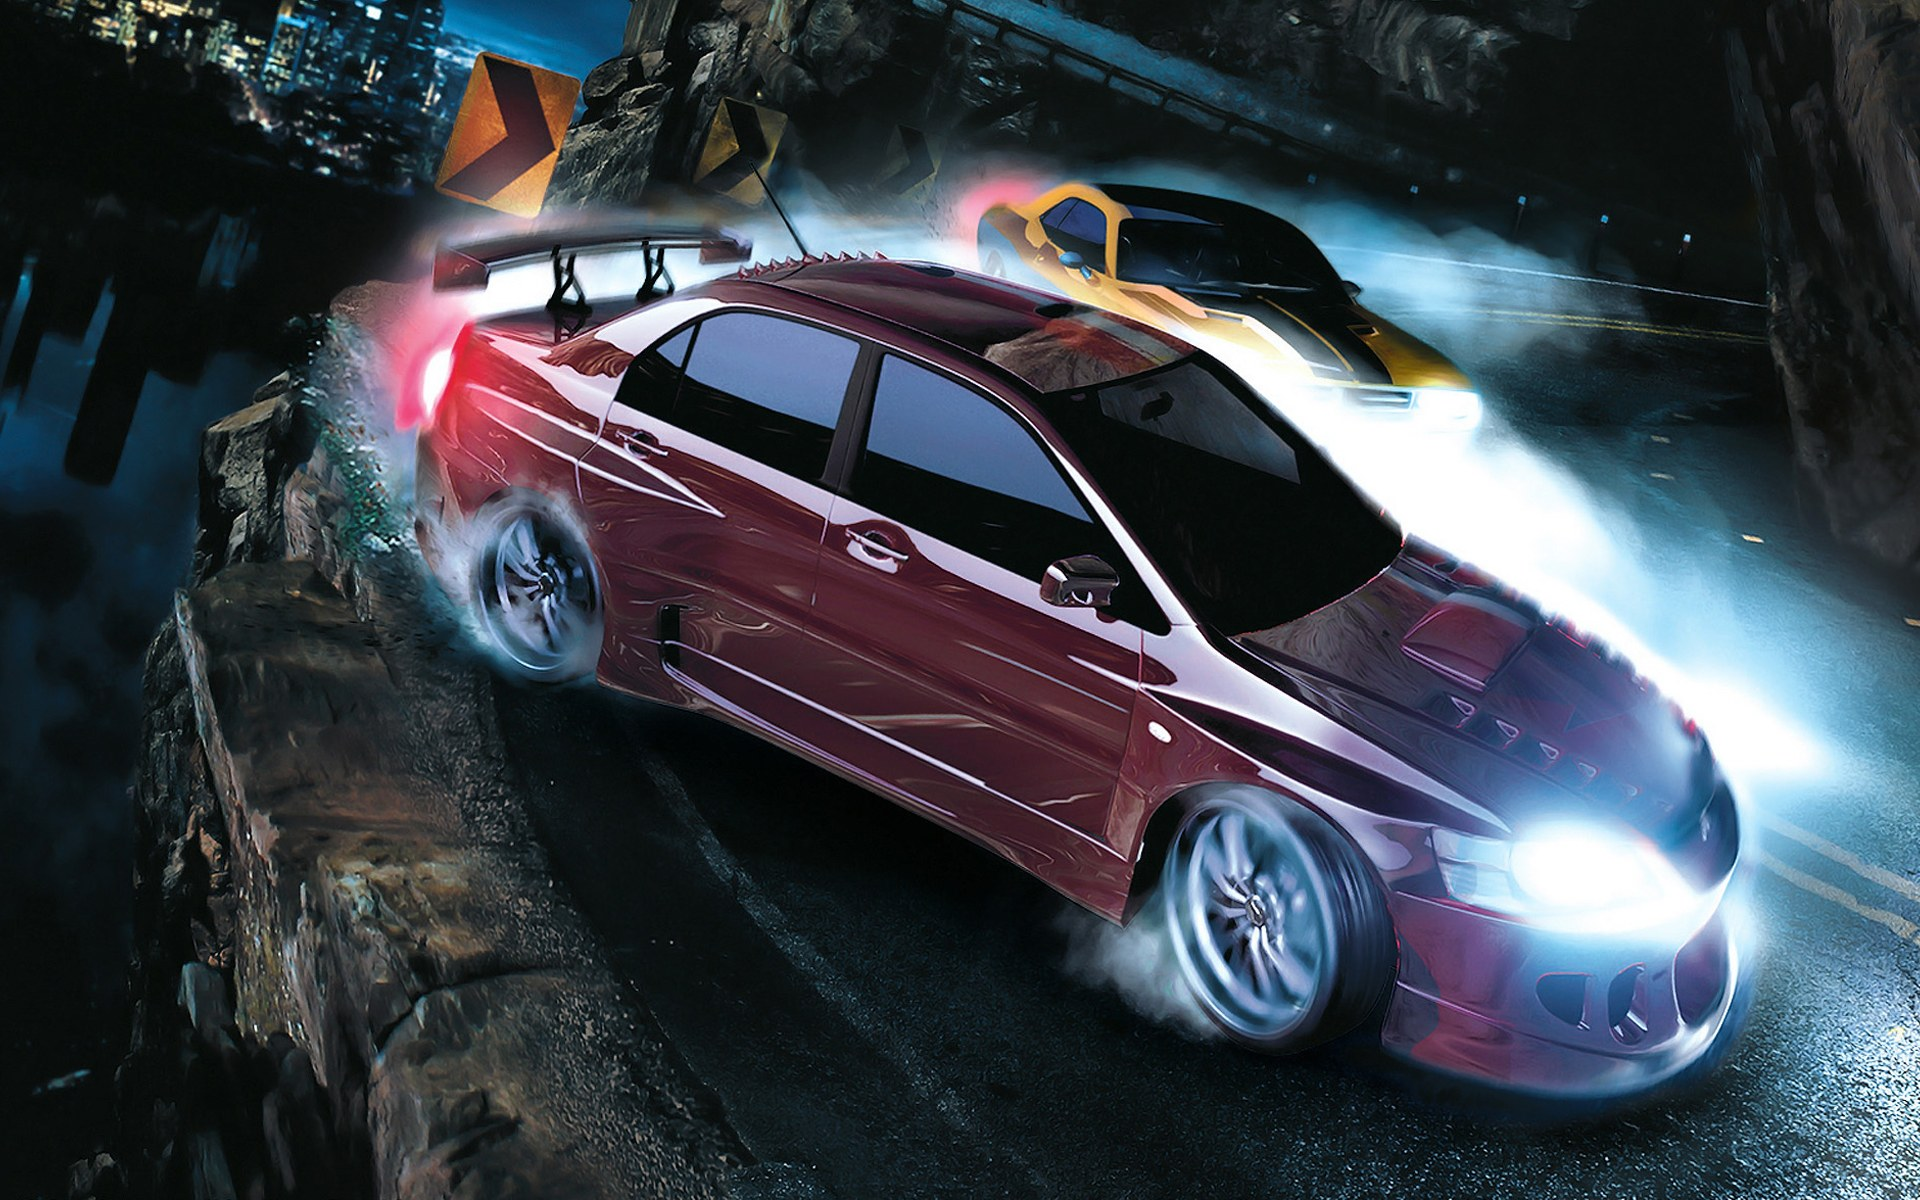 Latest Need For Speed HD Wallpaper Free Download